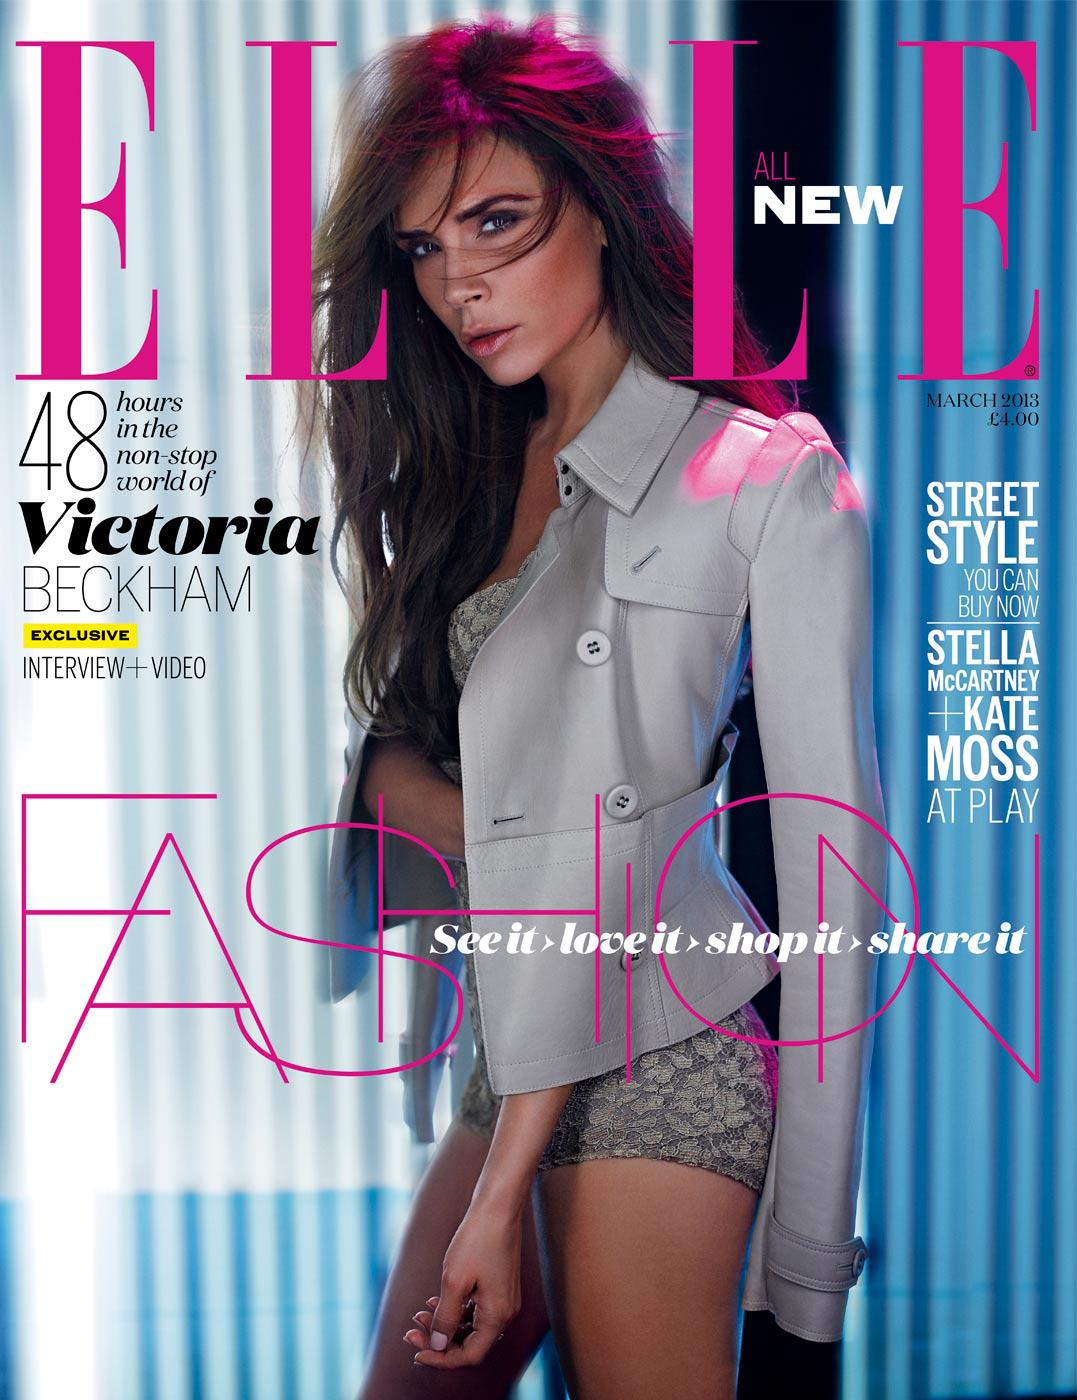 http://2.bp.blogspot.com/-J5g9NbRecl8/UQULXCTo_4I/AAAAAAABAYA/dSxbv4NLSwM/s1600/Elle-UK-March-2013-Victoria-Beckham-Cover-by-Carter-Smith.jpg